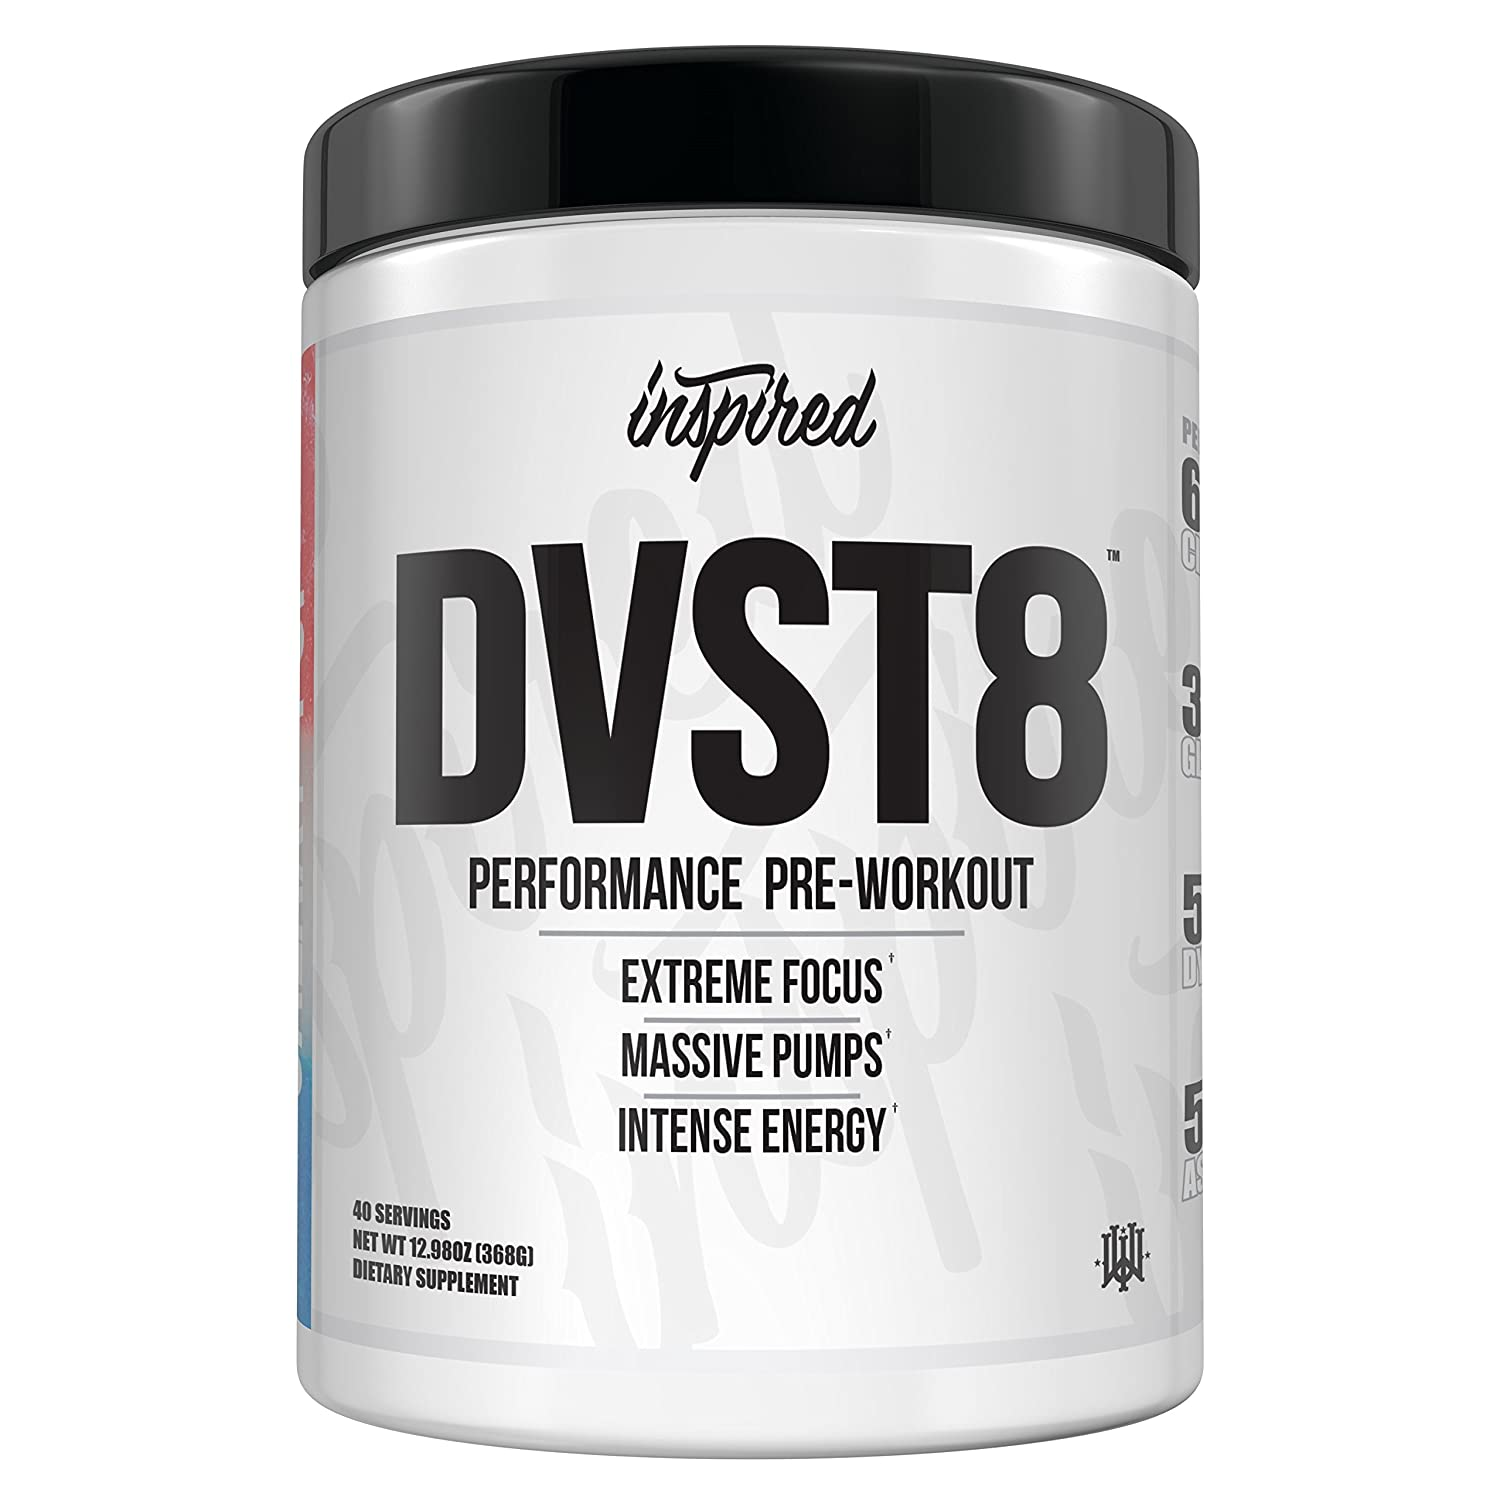 Inspired DVST8 Ultra Extreme Performance Pre-Workout Powder, Citrulline, Beta-Alanine, Dynamine Cali Gold 40 Servings